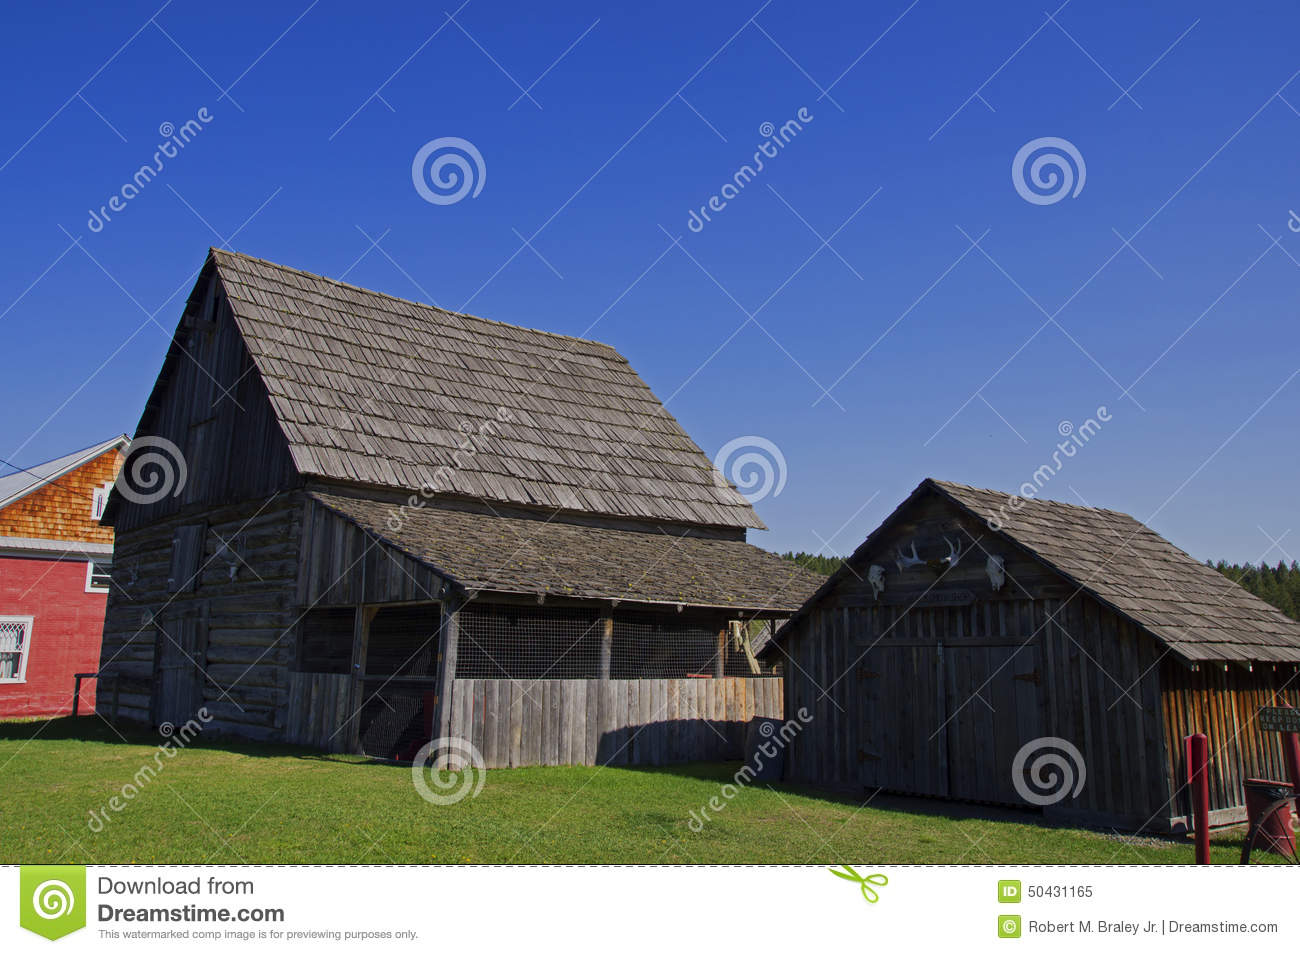 Vintage log barn shed house editorial image image 50431165 for Log barn homes